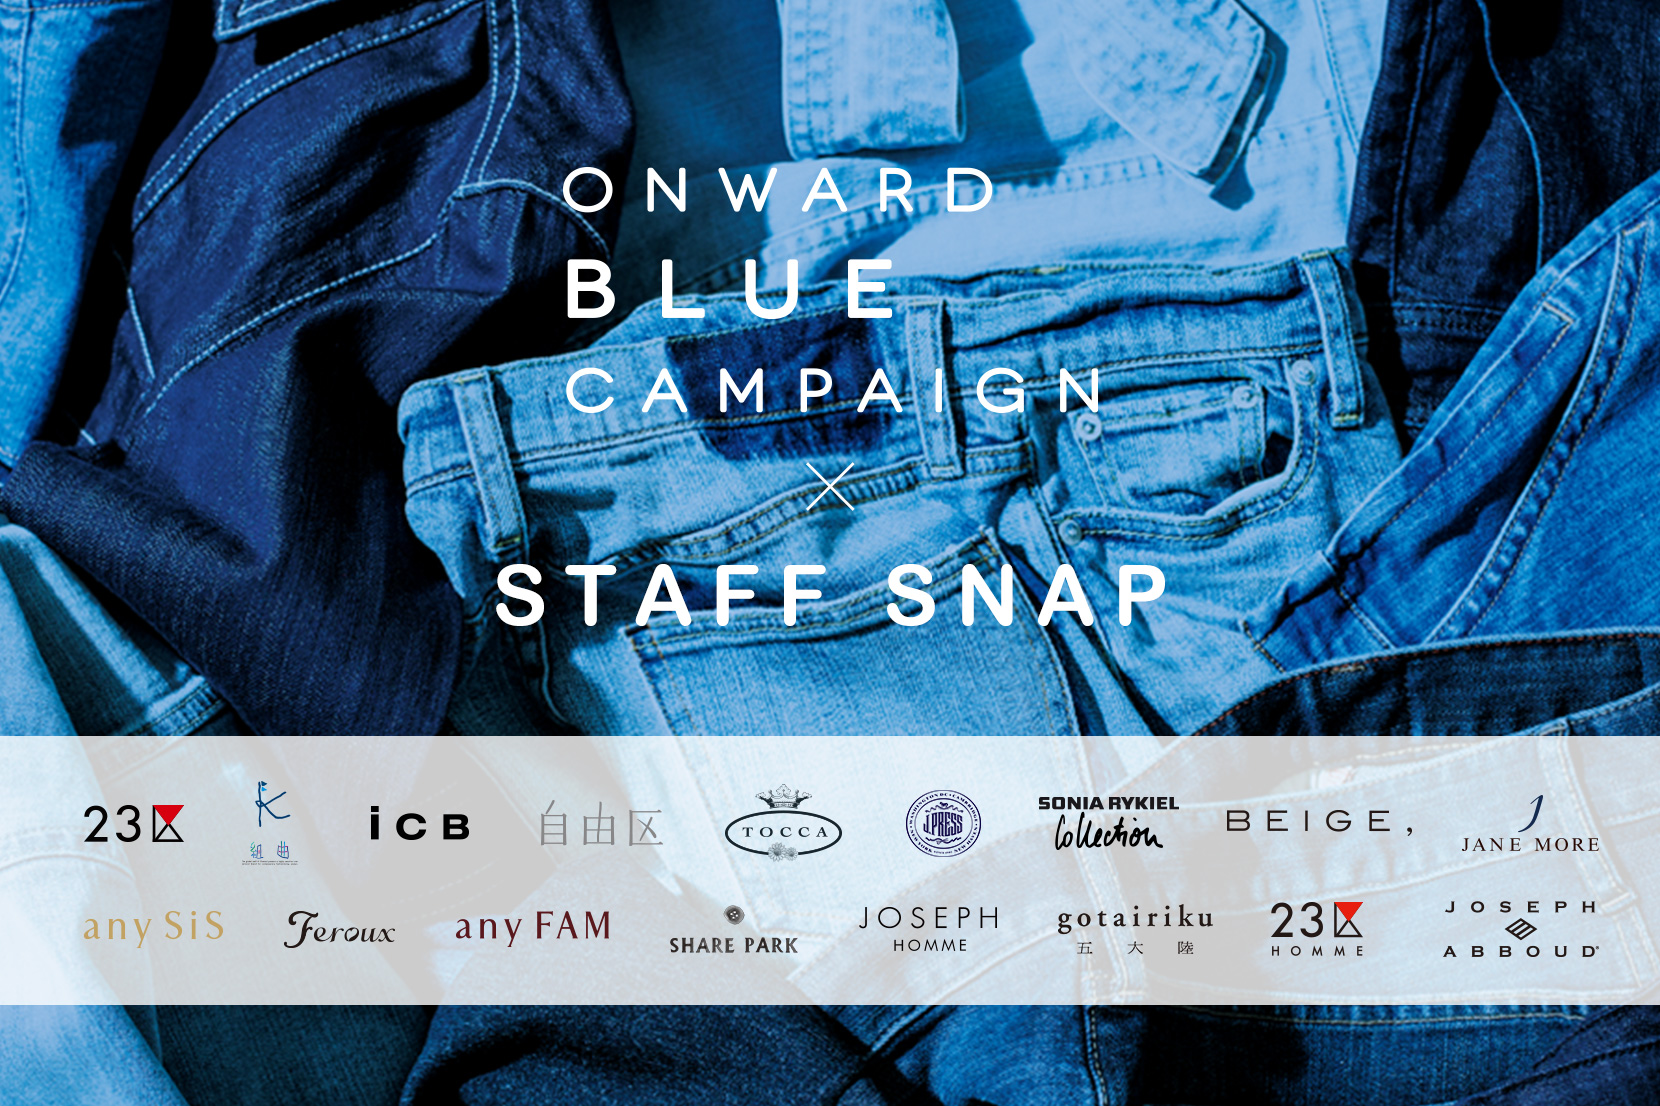 BLUE CAMPAIGN x STAFF SNAP -ONWARD